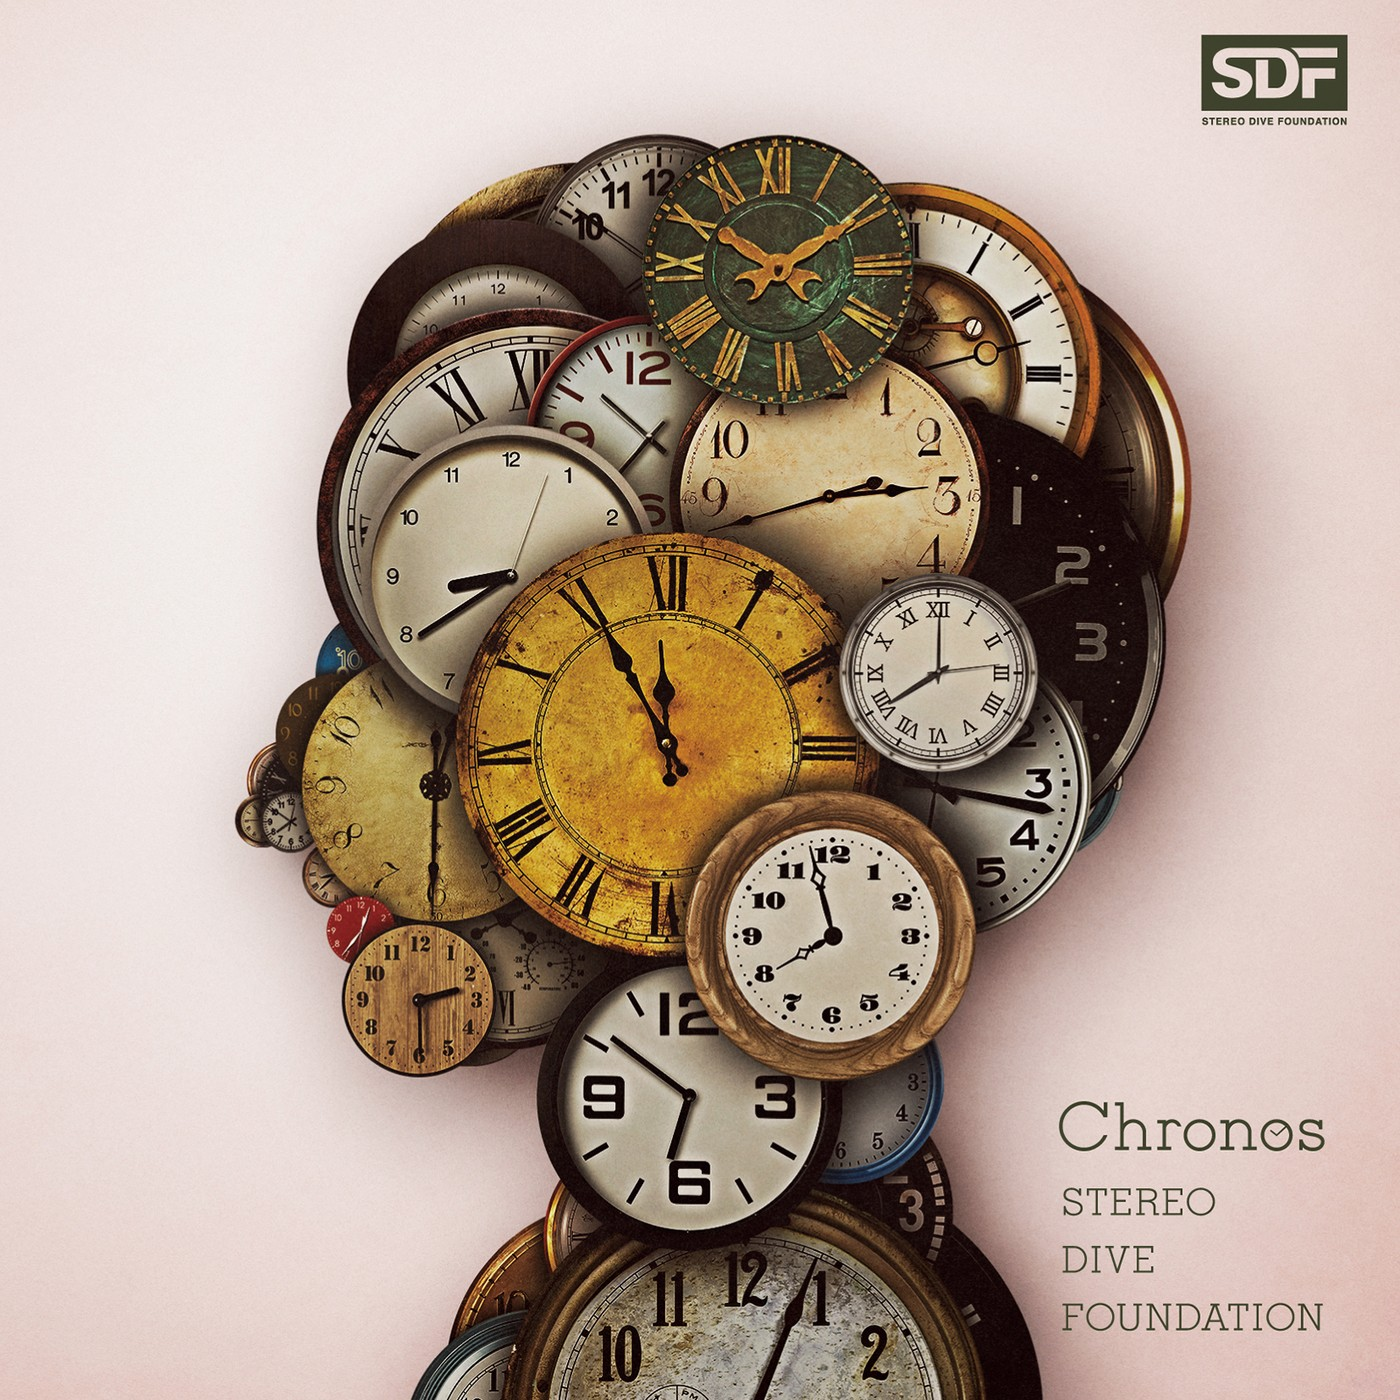 STEREO DIVE FOUNDATION – Chronos [FLAC / 24bit Lossless / WEB] [2019.10.23]